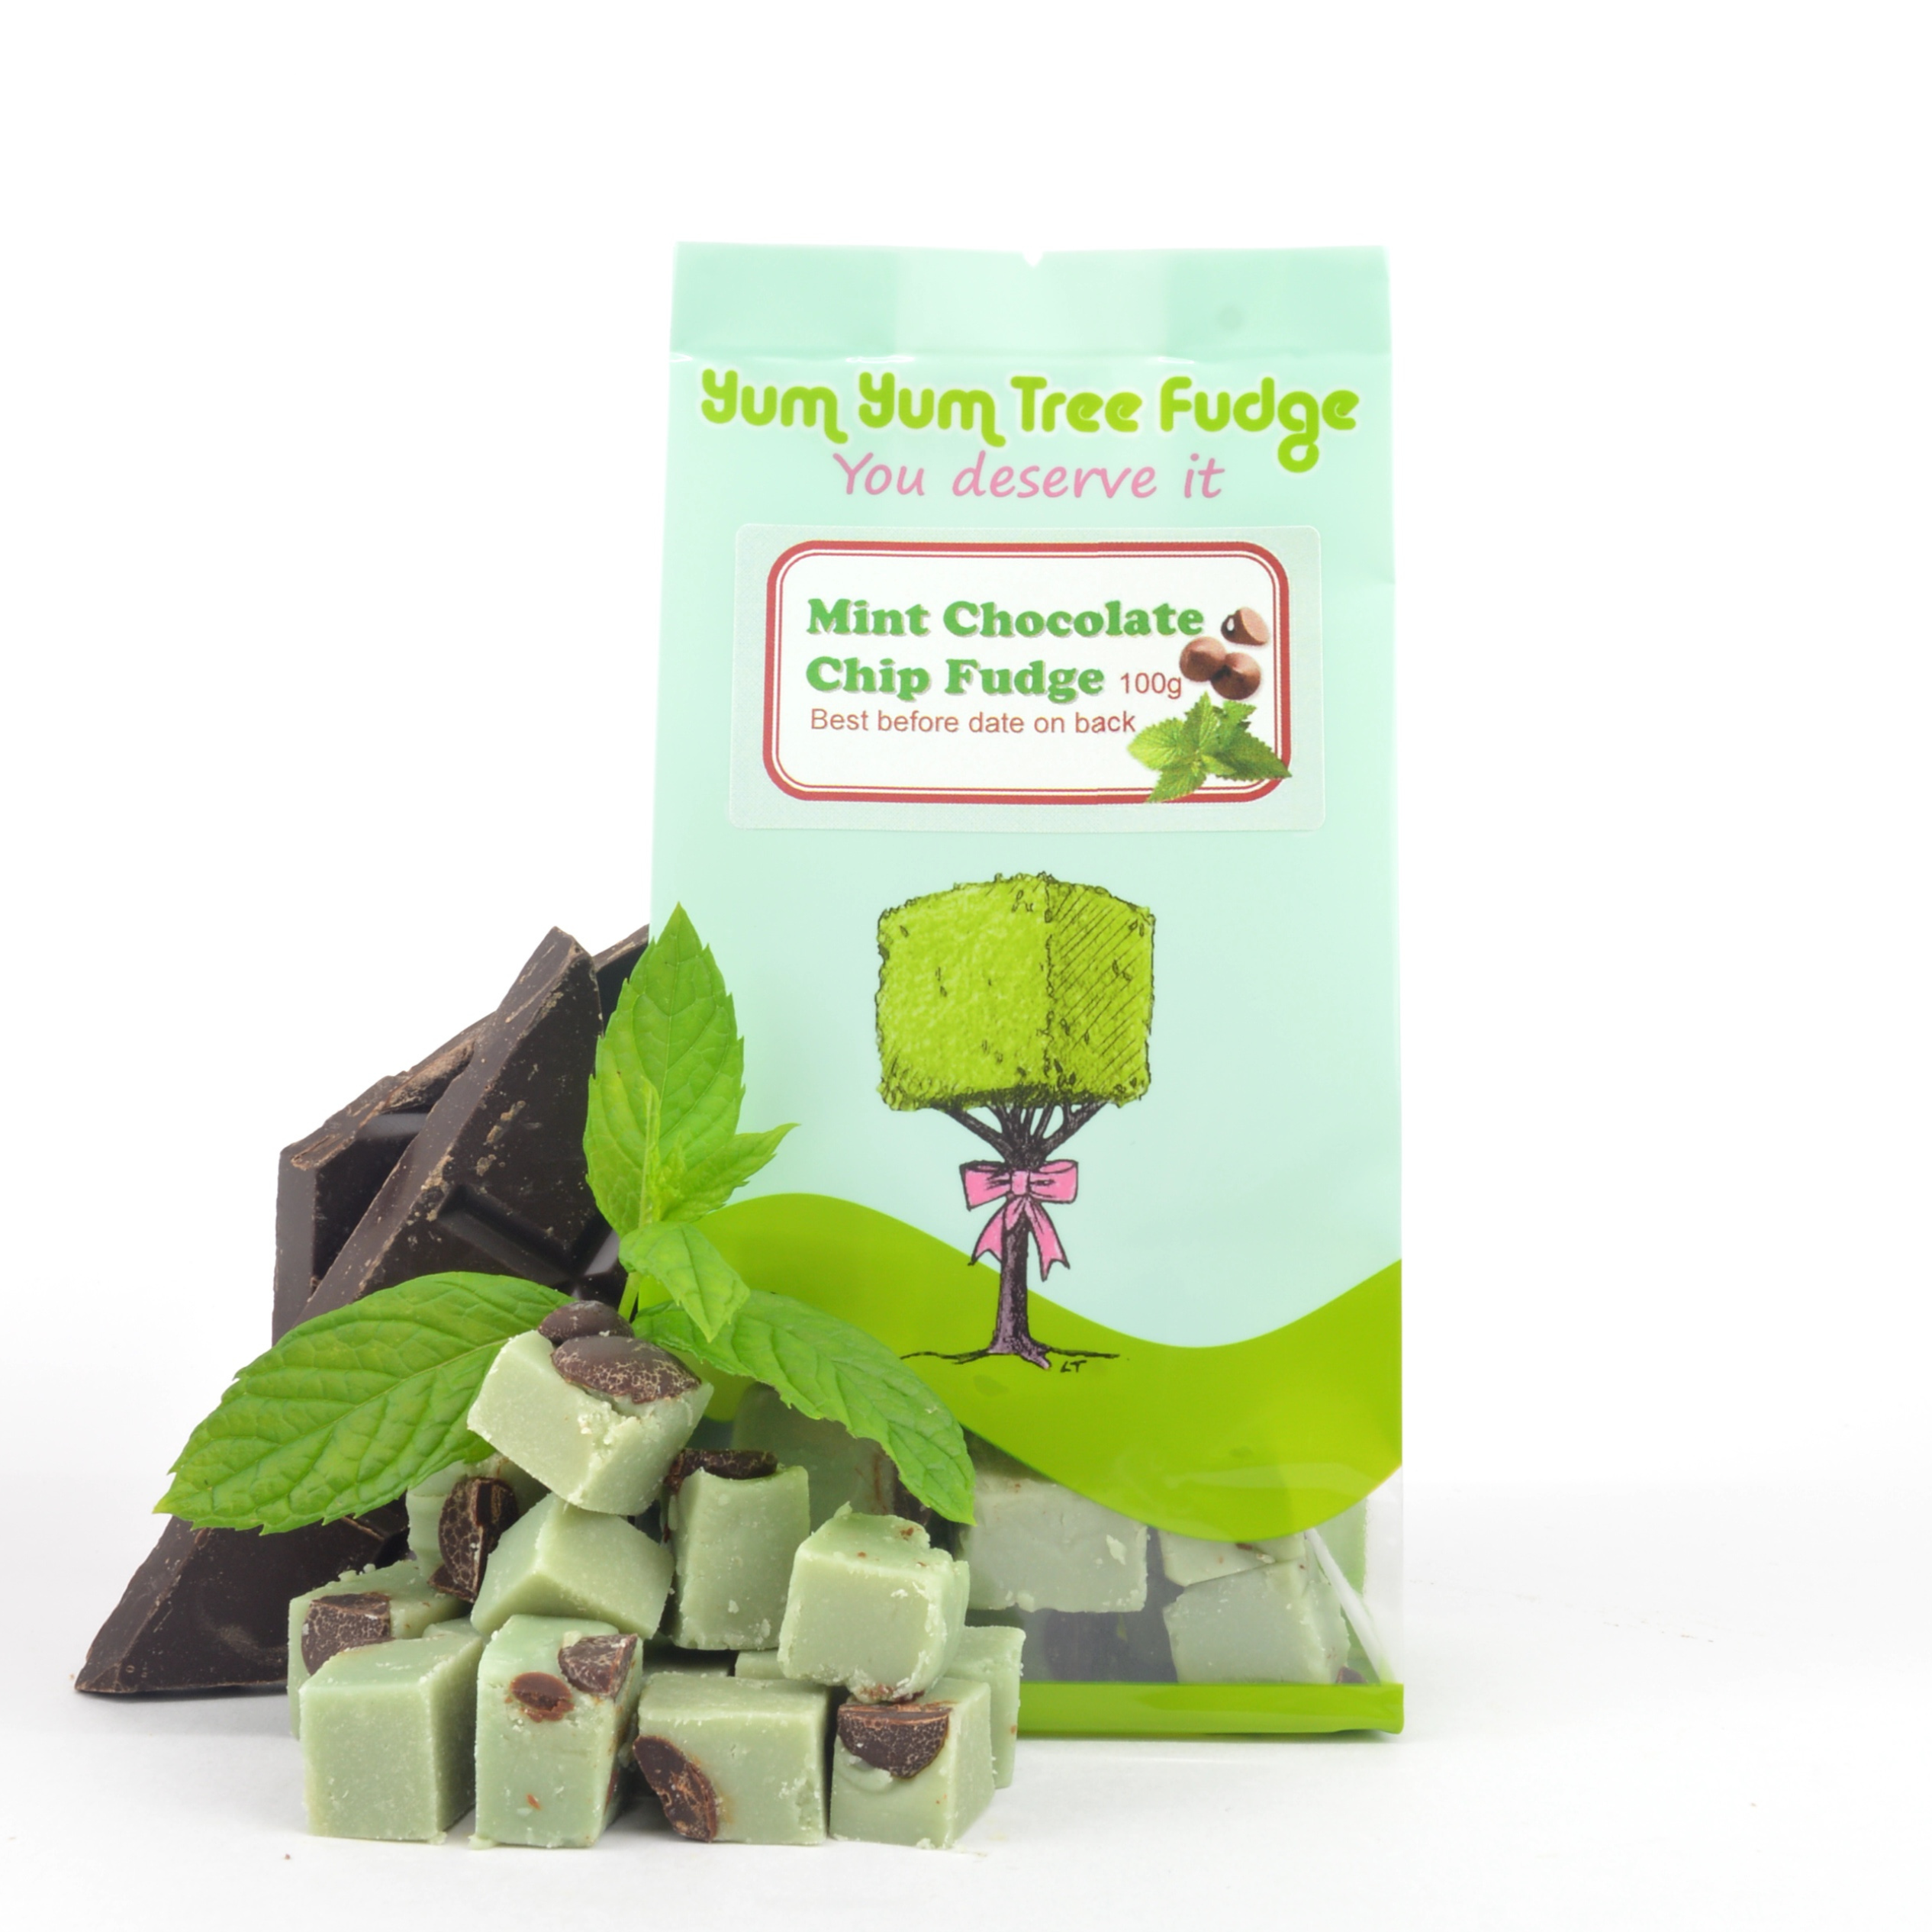 Mint Choc Chip Fudge by Yum Yum Tree Fudge